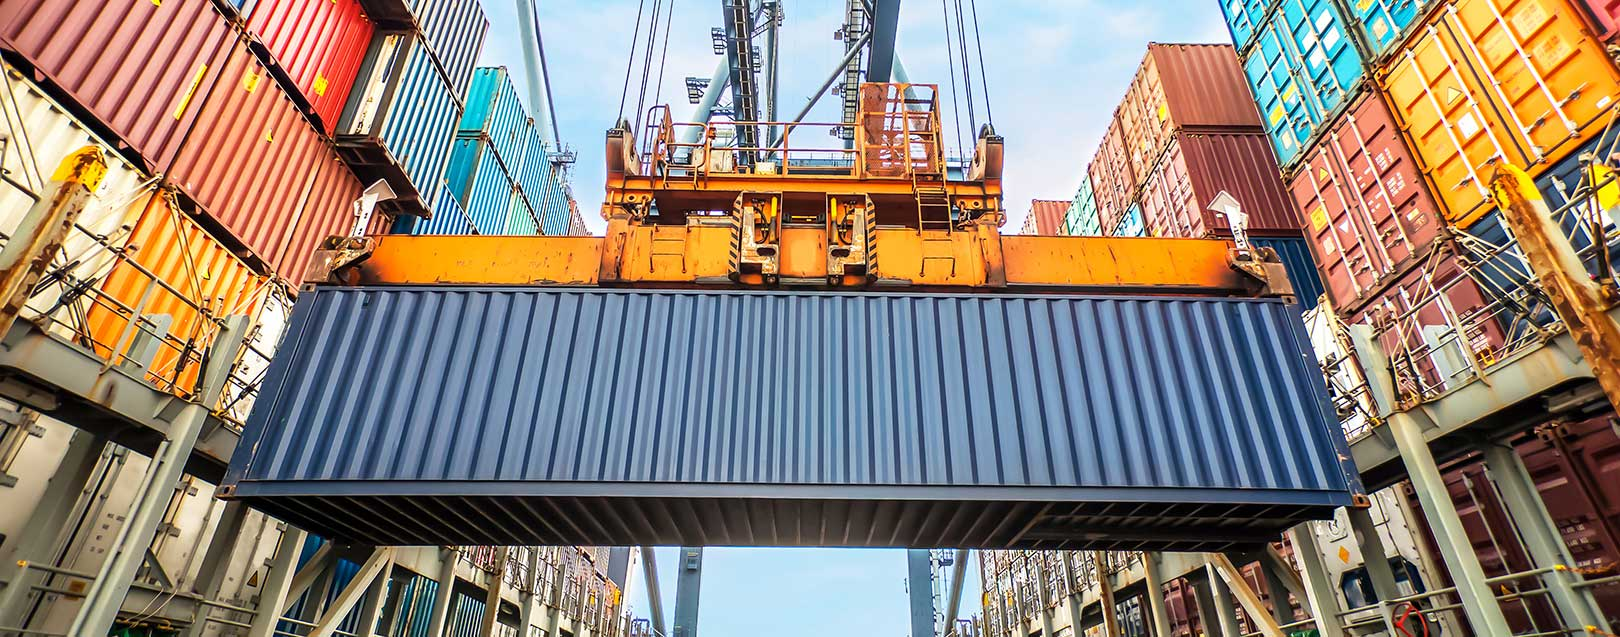 Australia's first quarter trade surplus to be boosted by soaring export prices